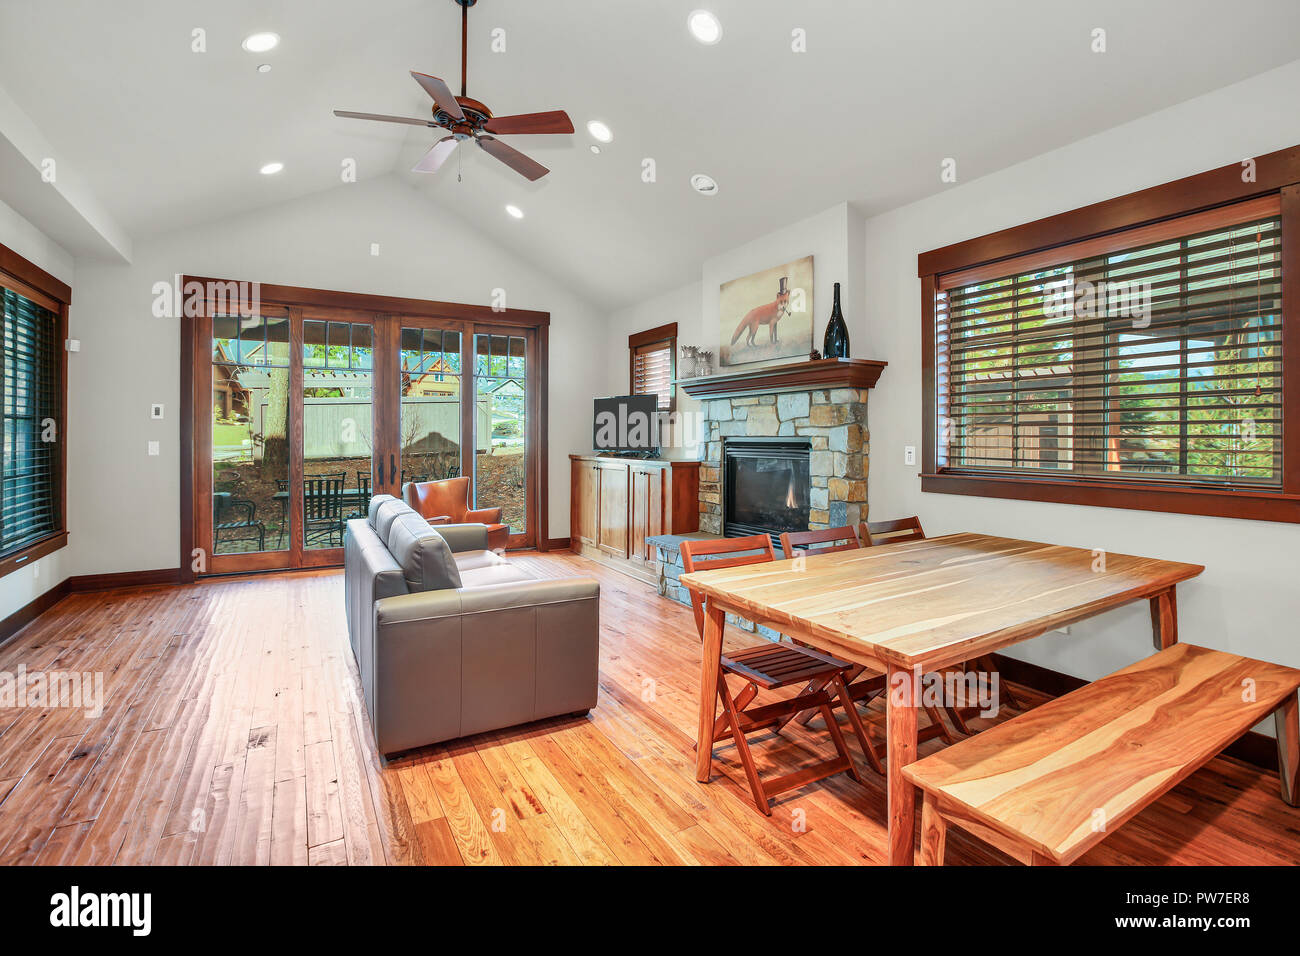 Open Floor Plan Design Of A Living Room And Dining With Vaulted